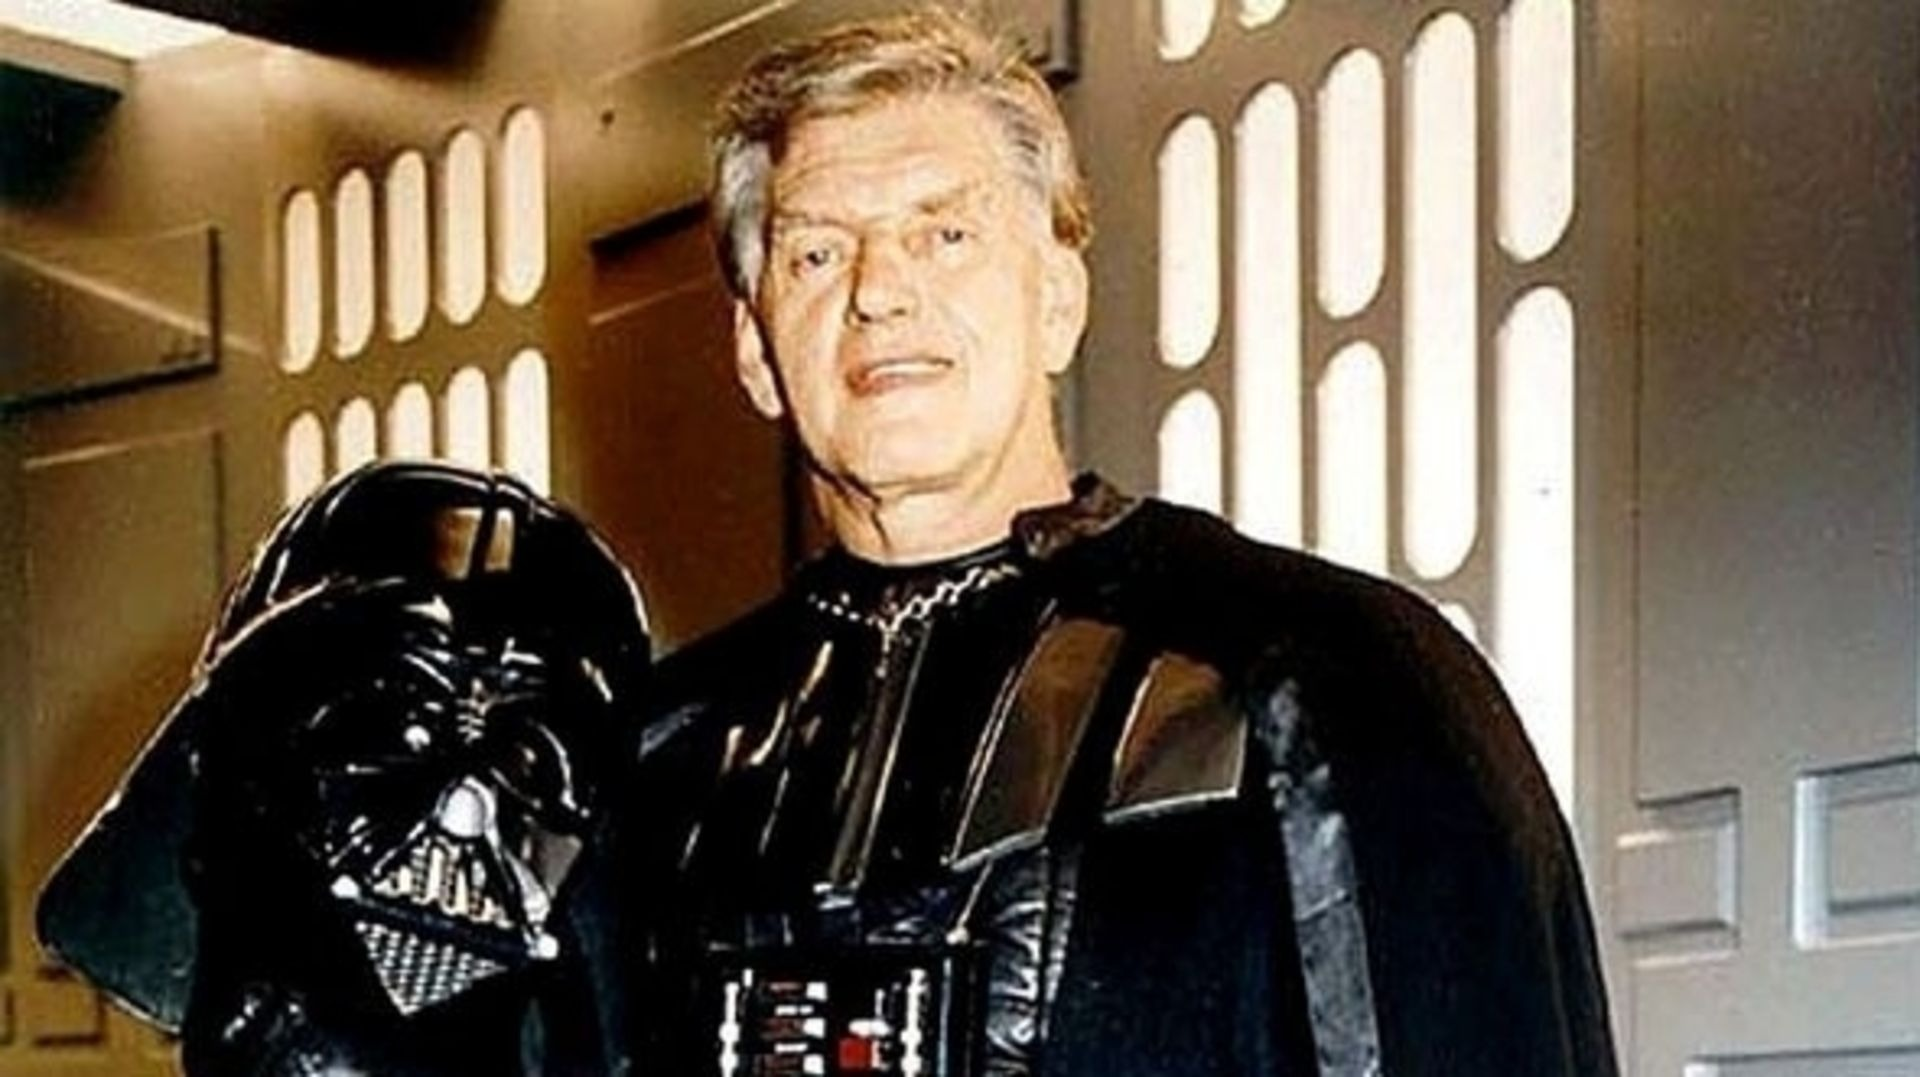 Star Wars: The Old Republic players hold memorial service for Darth Vader actor David Prowse